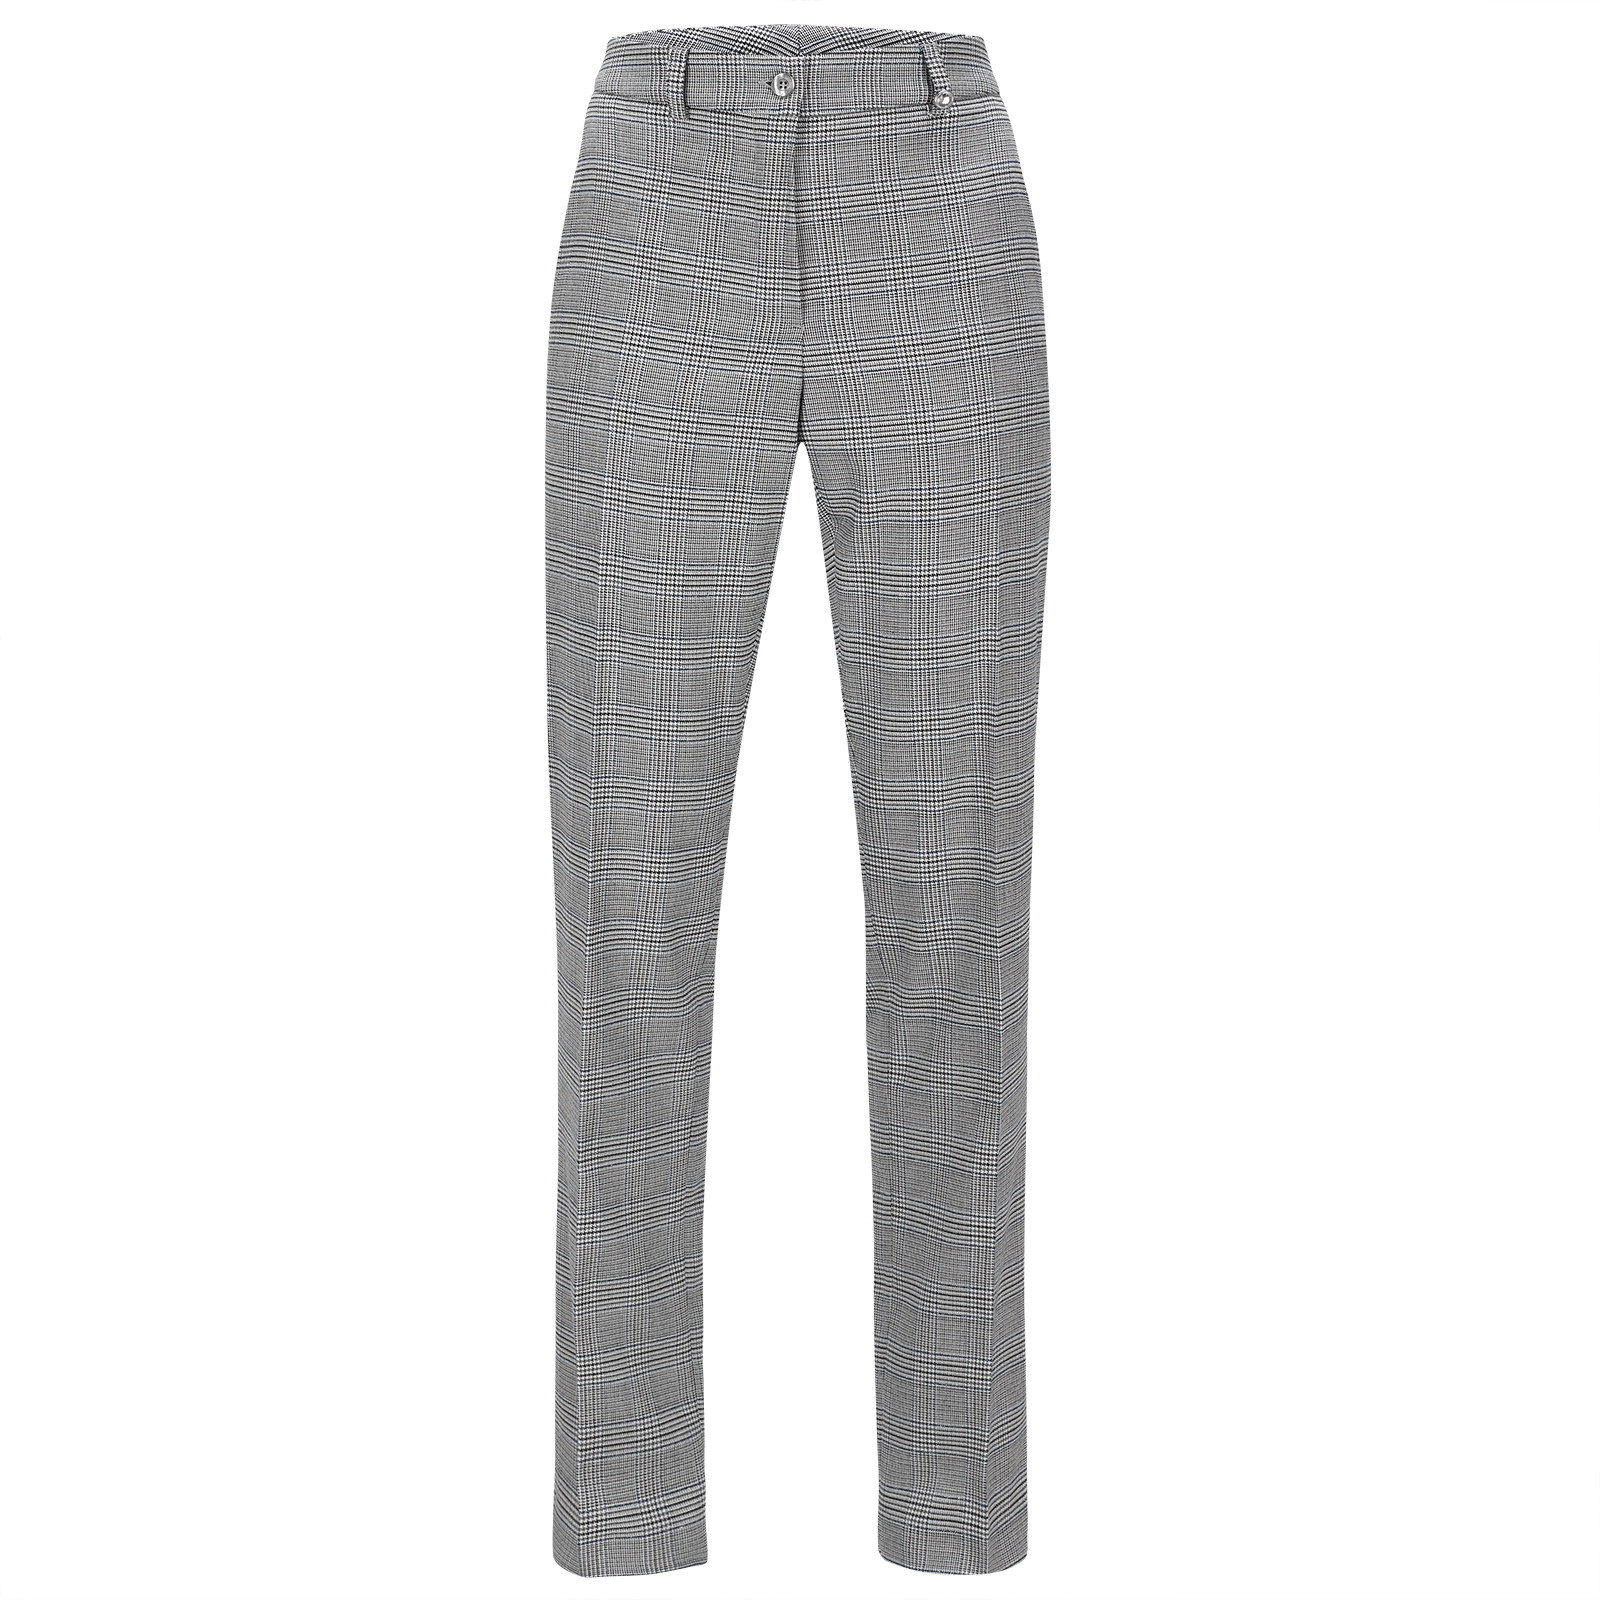 Elegant ladies' stretch golf trousers in regular fit